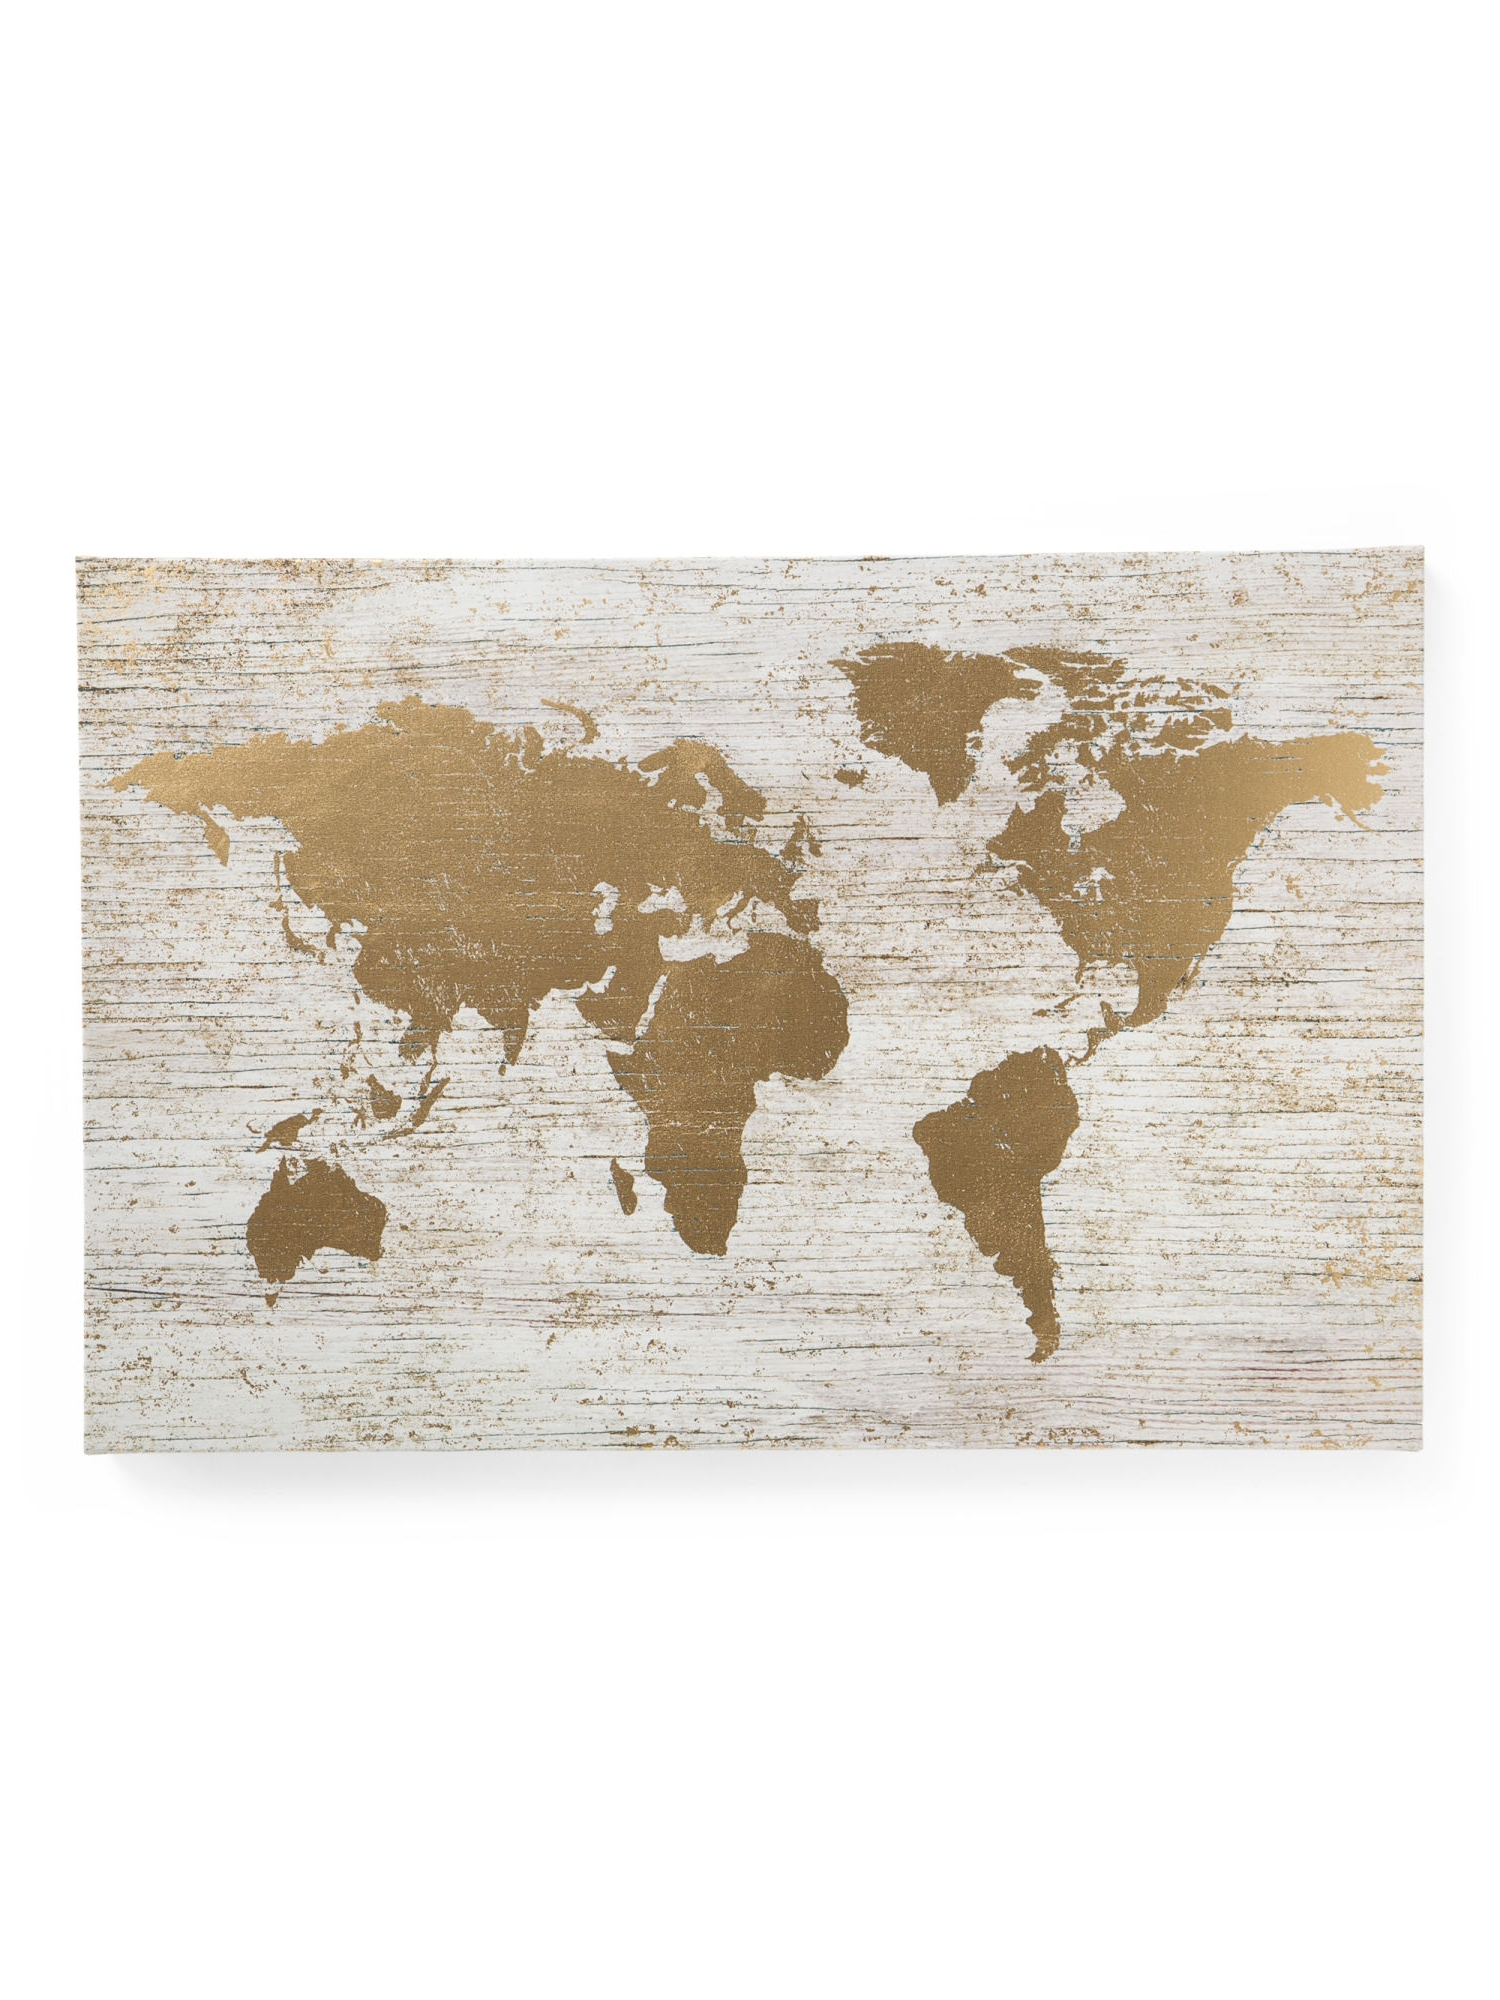 Tj Maxx Wall Art For Most Recently Released Large Gold Foil World Map On Canvas – Global Home – T.j.maxx (Gallery 6 of 15)